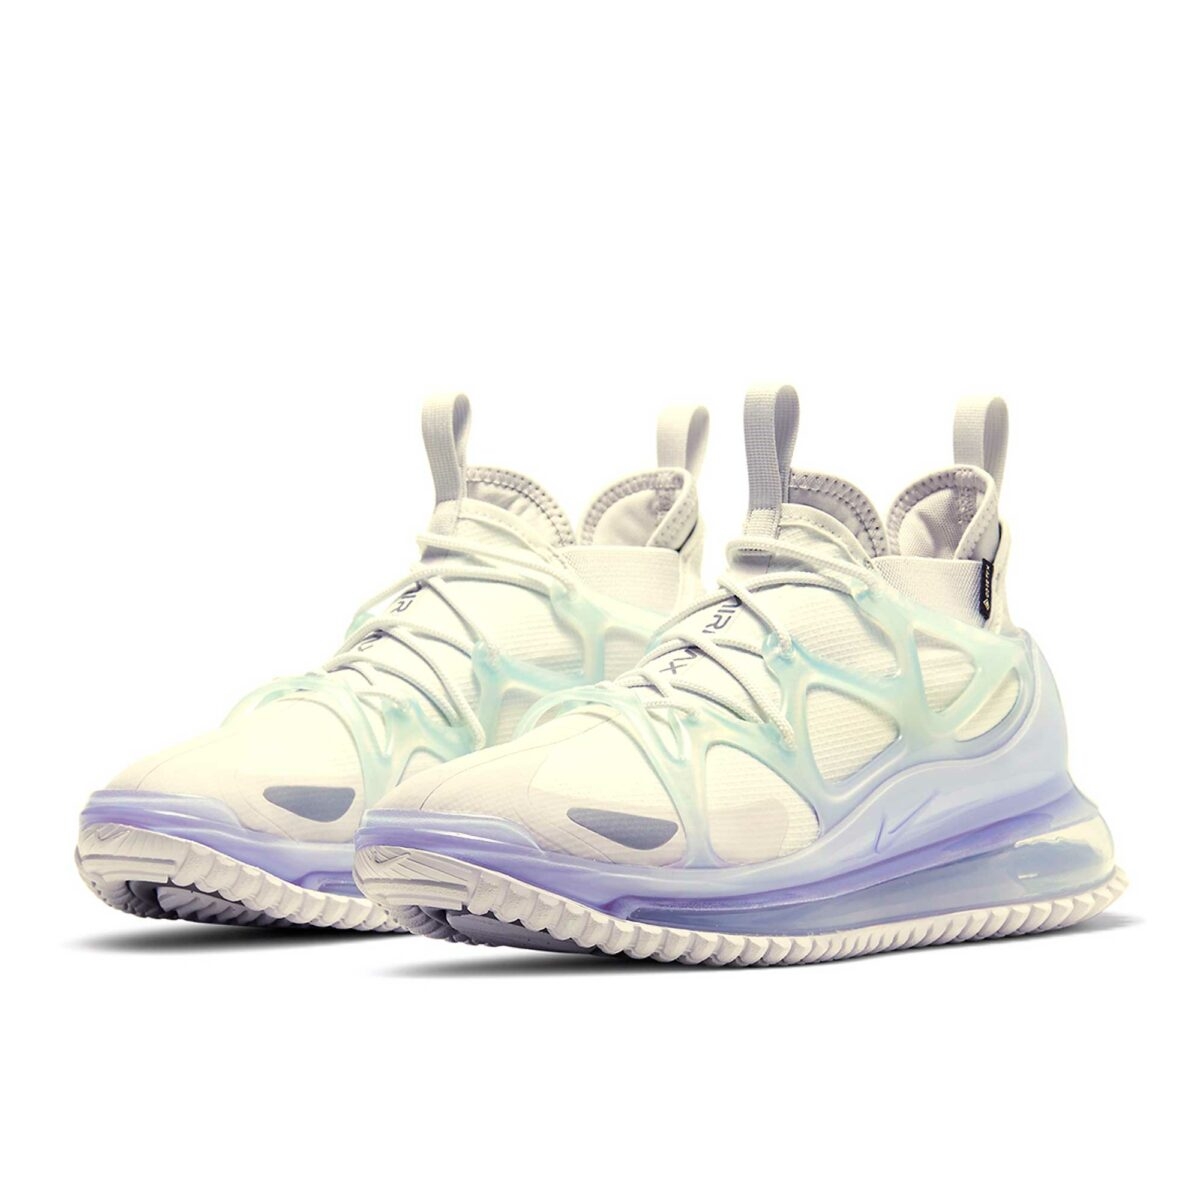 nike air max 720 horizon summit white BQ5808_100 купить